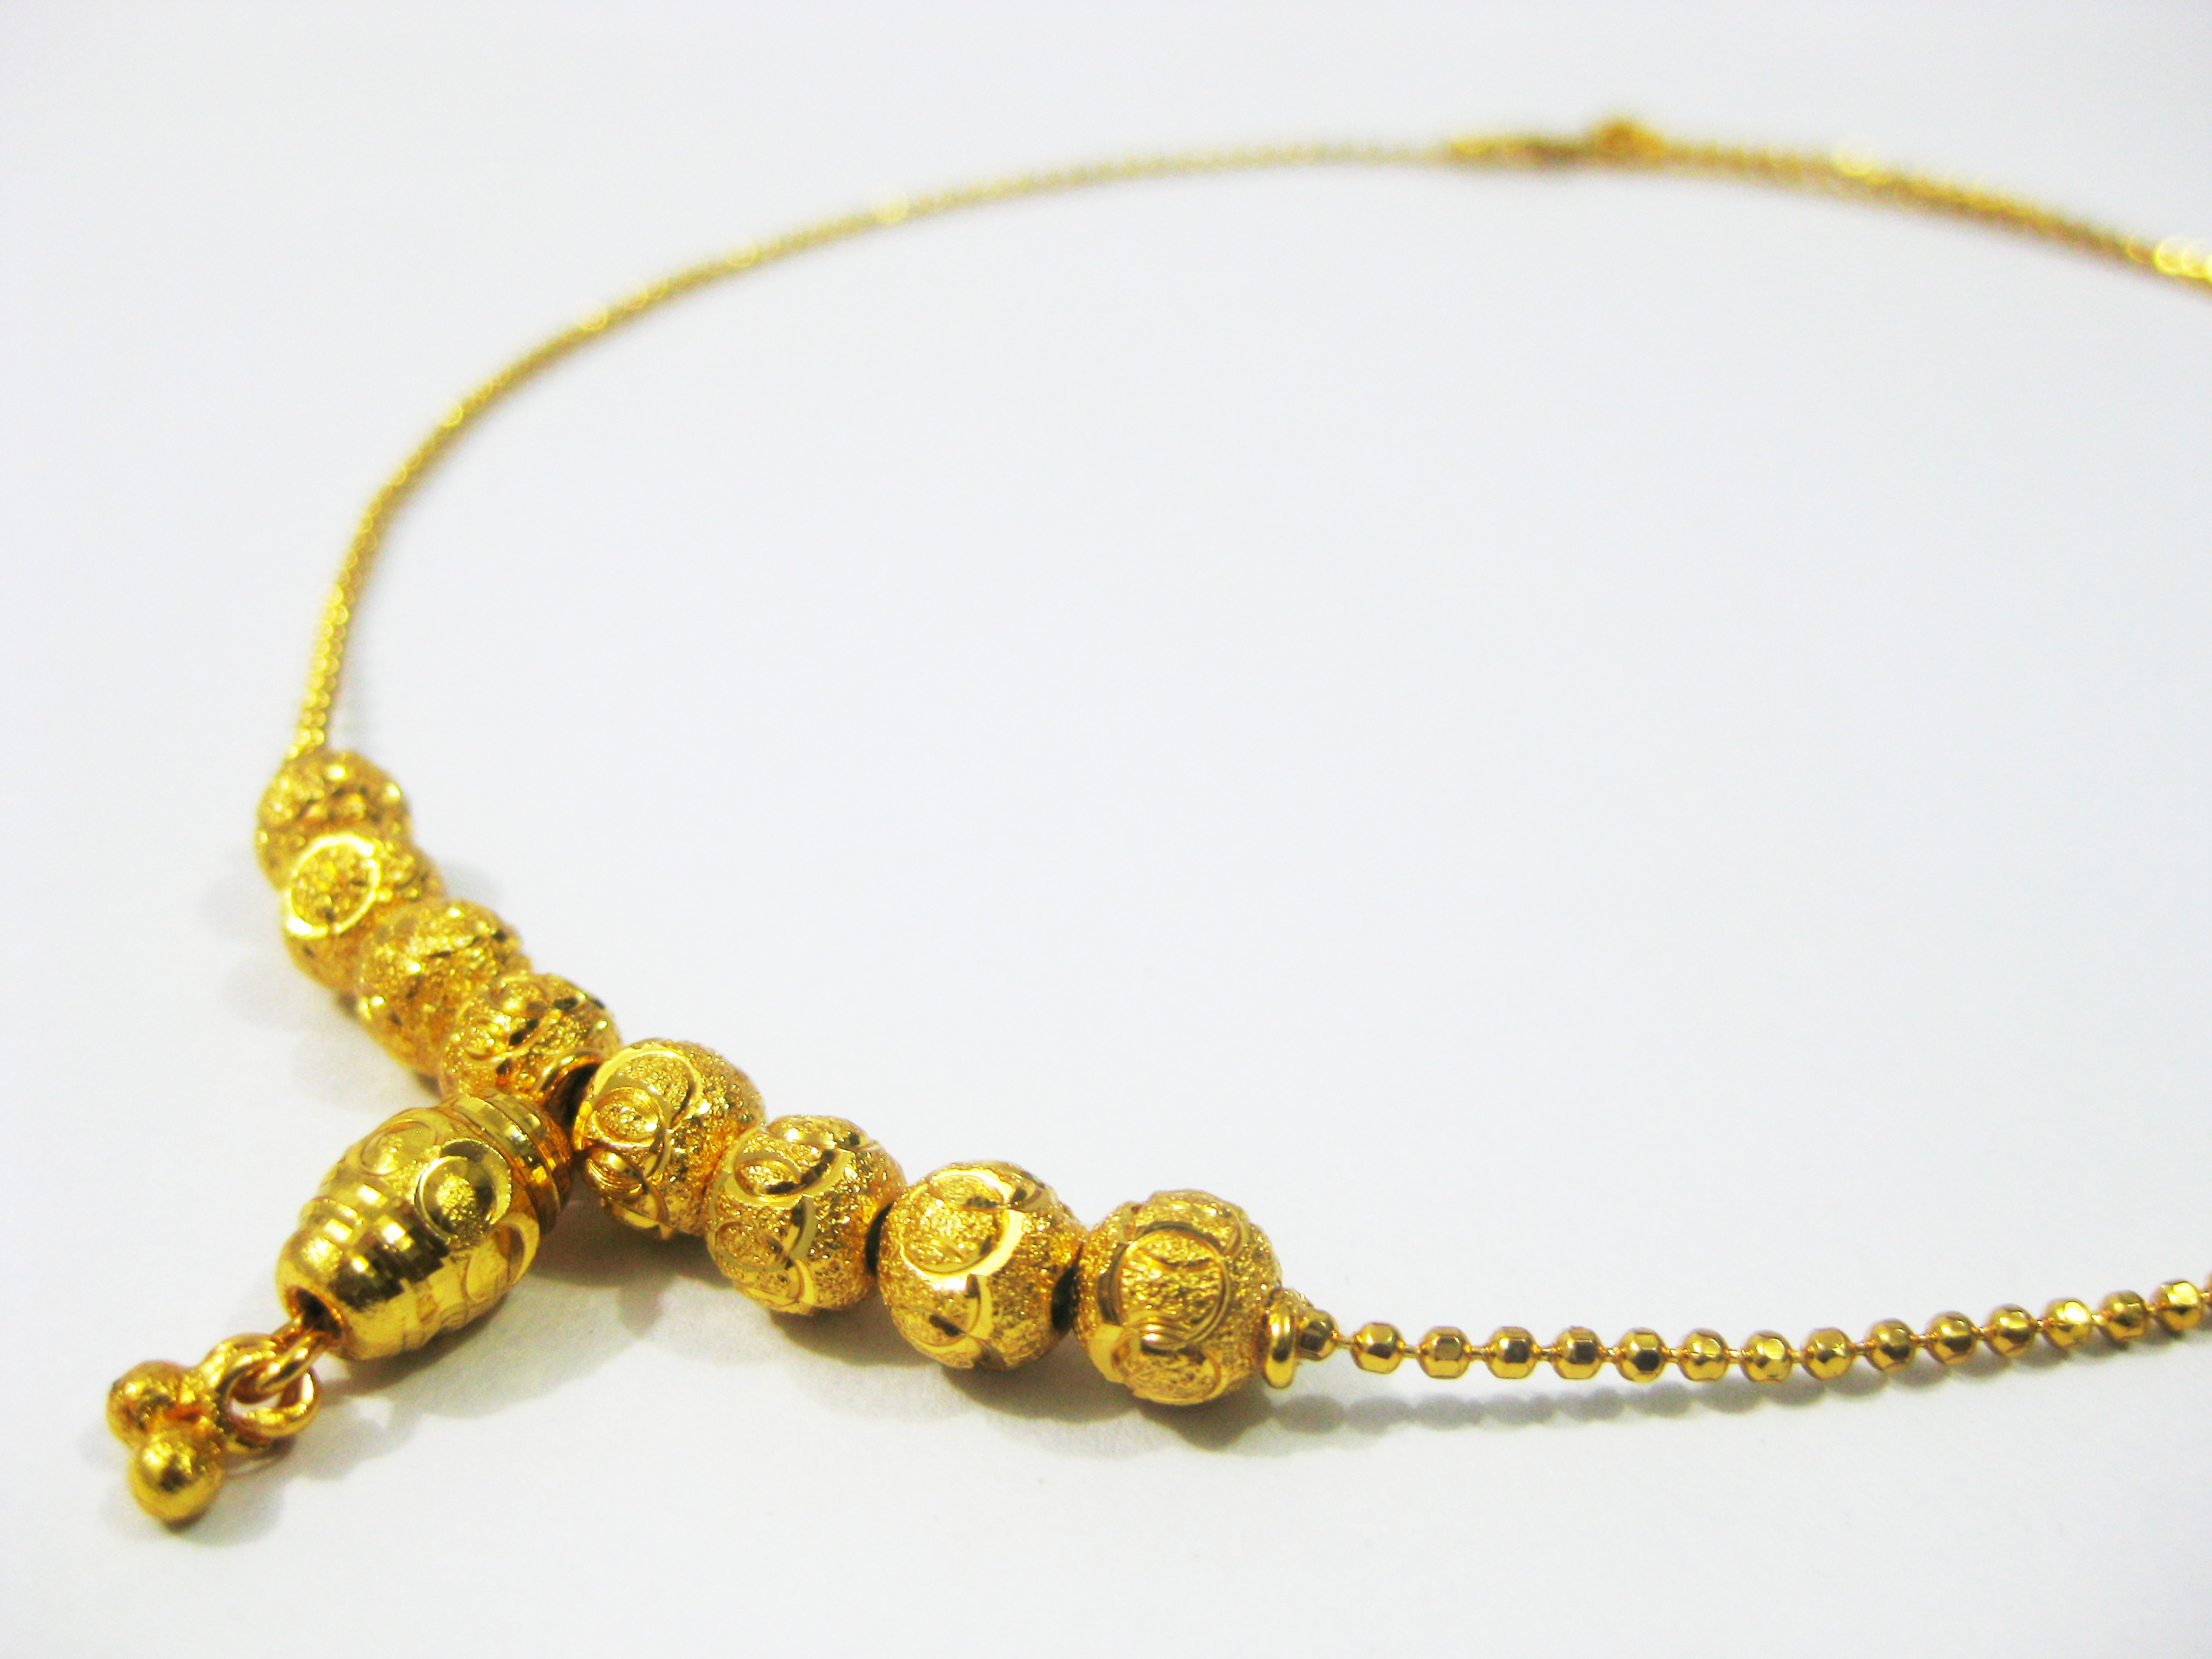 Discounts on Gold in Pitampura, Delhi